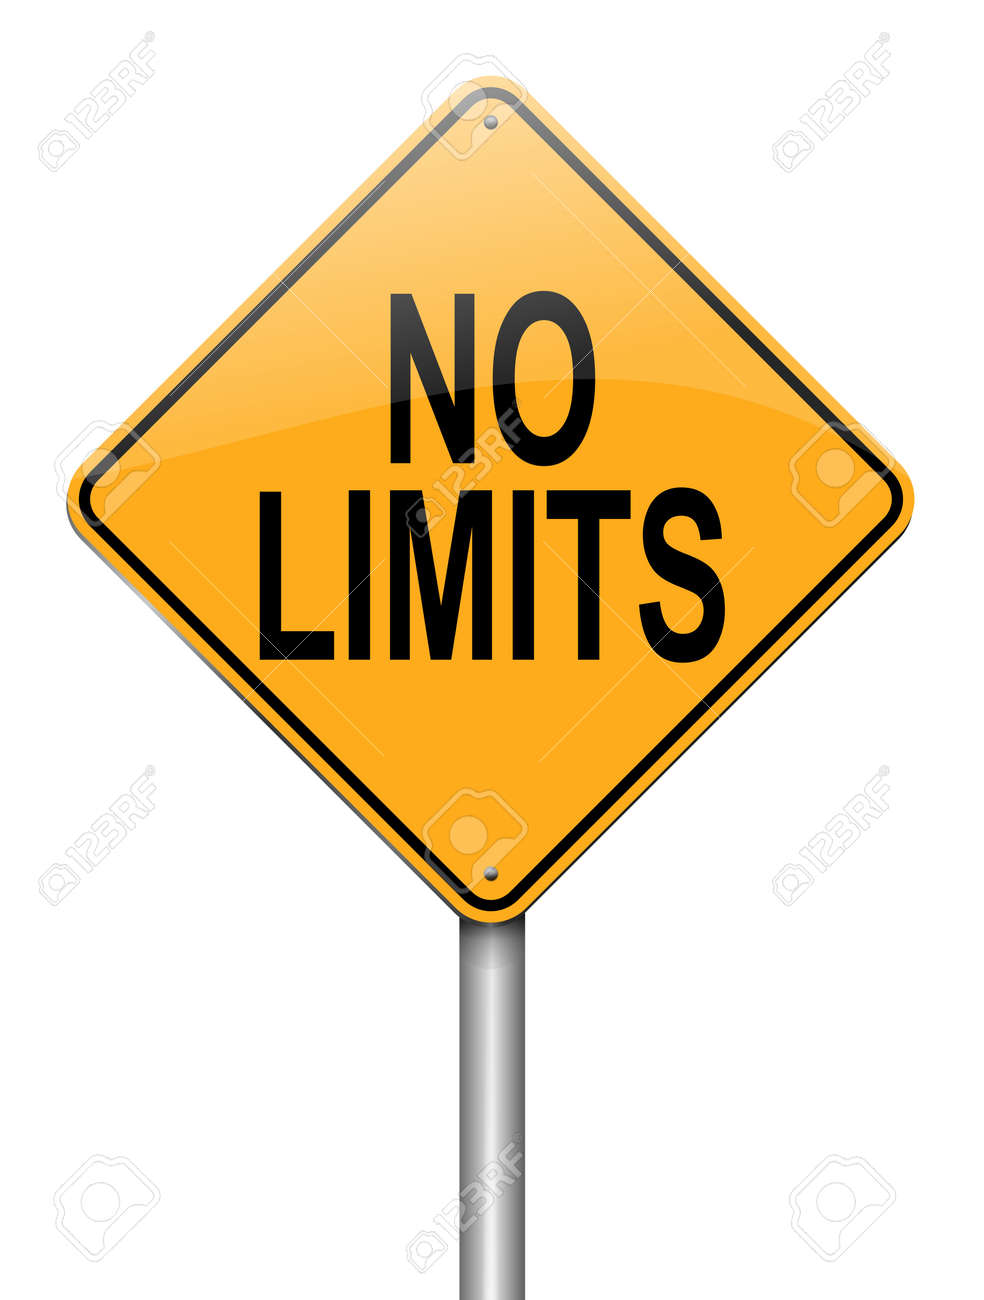 Illustration depicting a roadsign with a no limits concept. White background. Stock Photo - 16254998